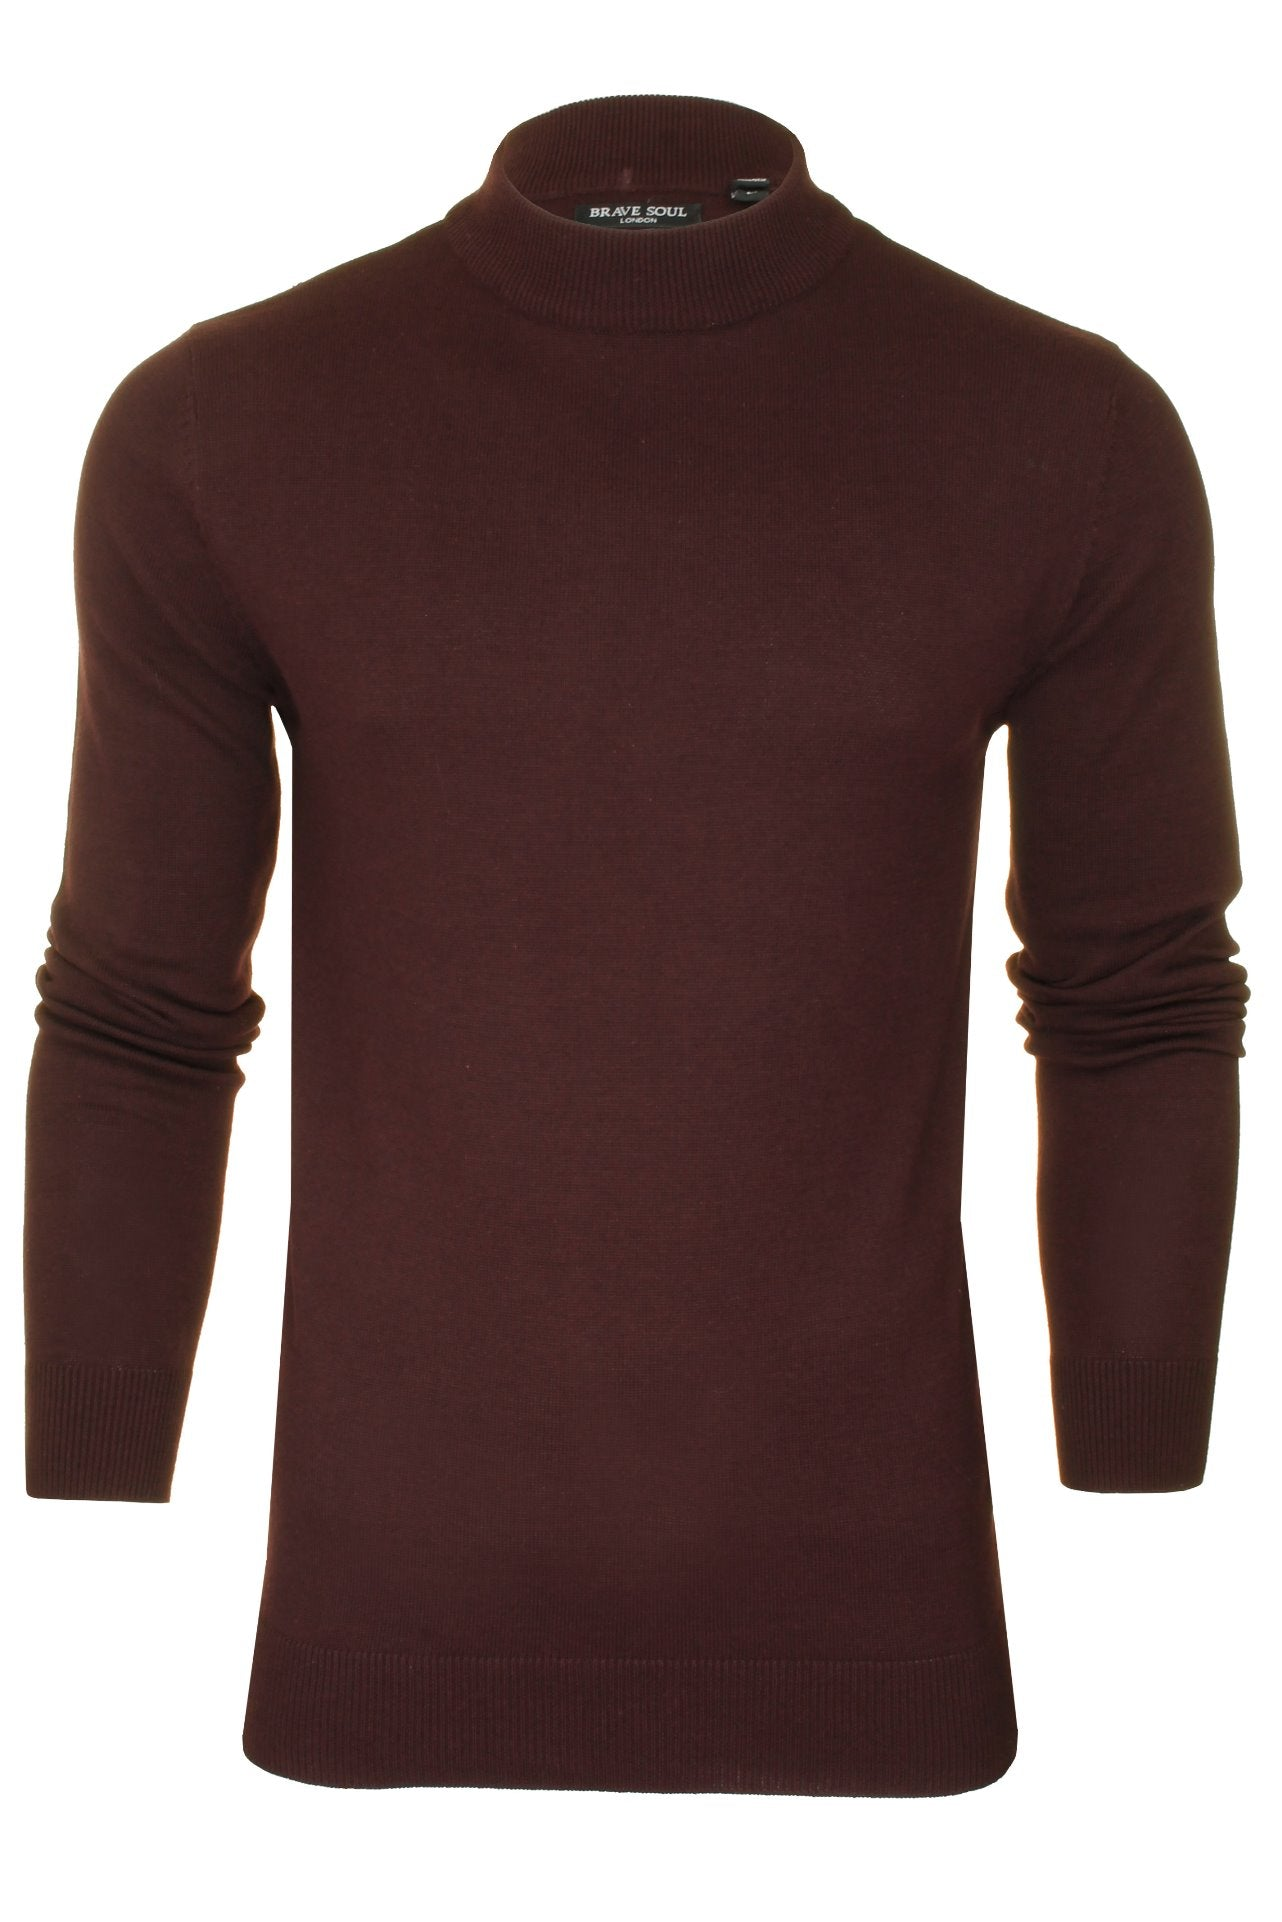 Brave Soul Men's Turtle Neck Jumper_01_Mk-181Turtle-X_Ox Blood